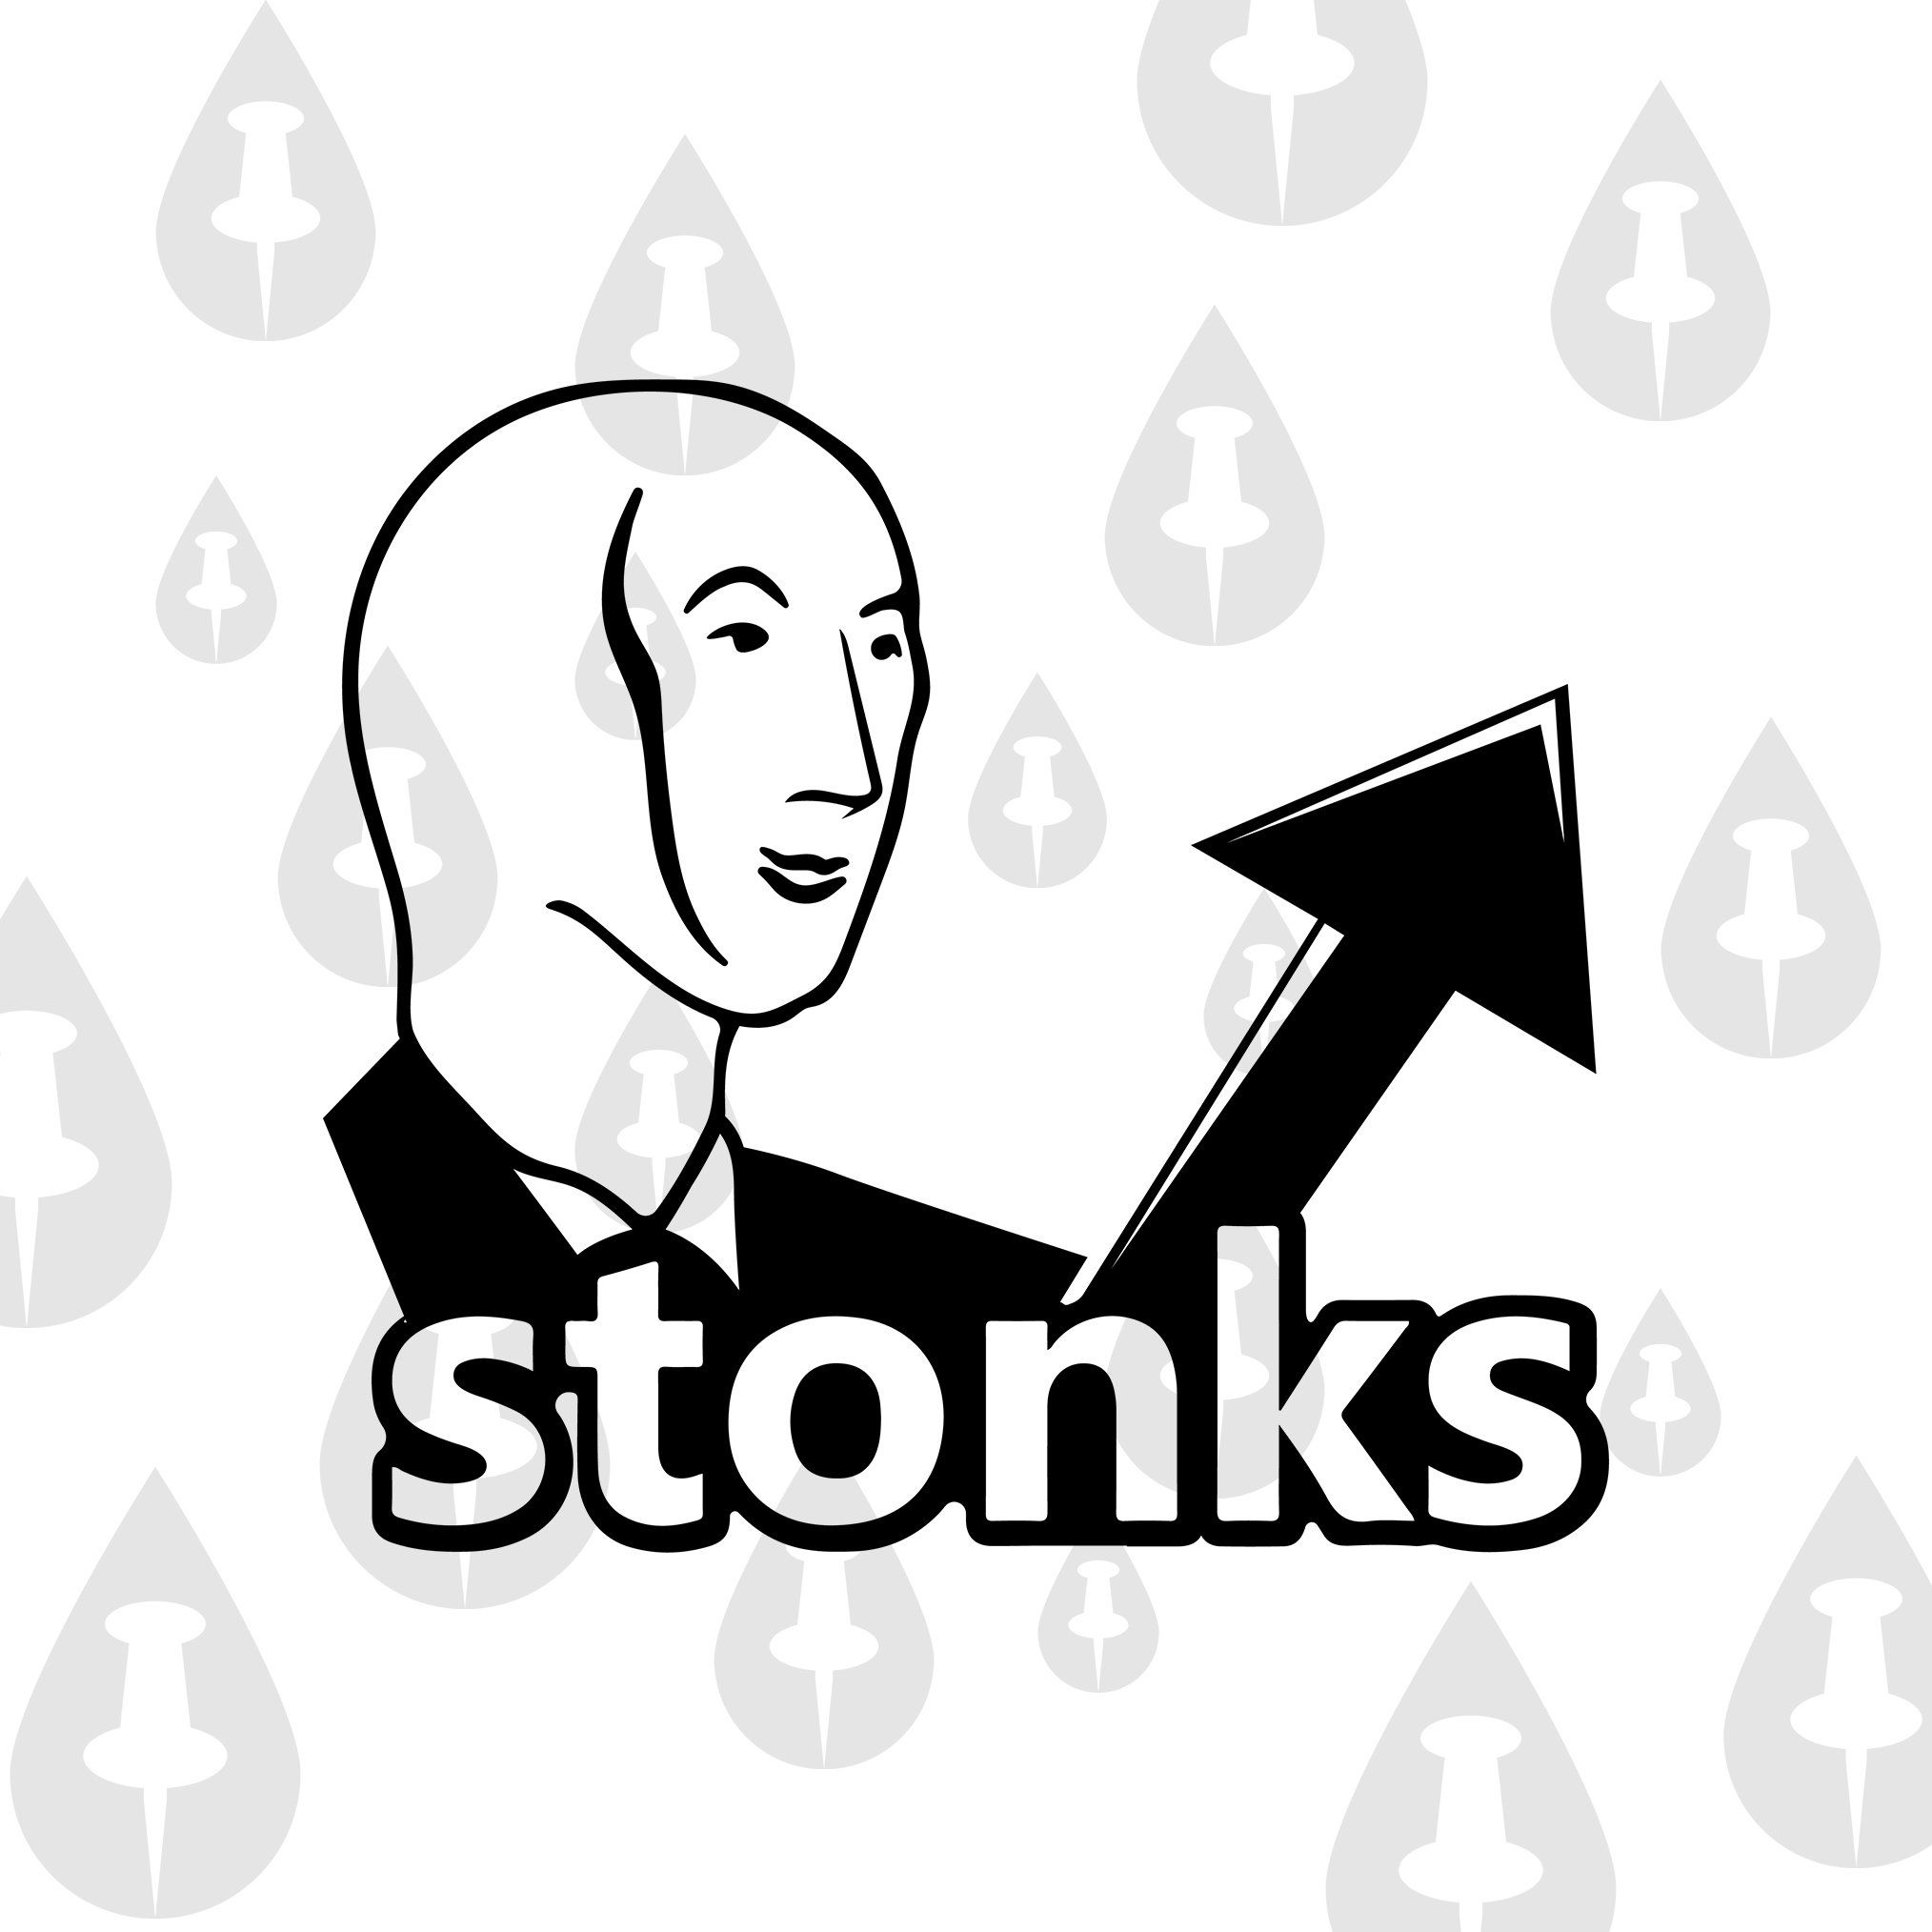 Stonks Funny Meme Svg Logo And Face Gme Gamestop Amc Etsy In 2021 Funny Memes Classic Memes Memes